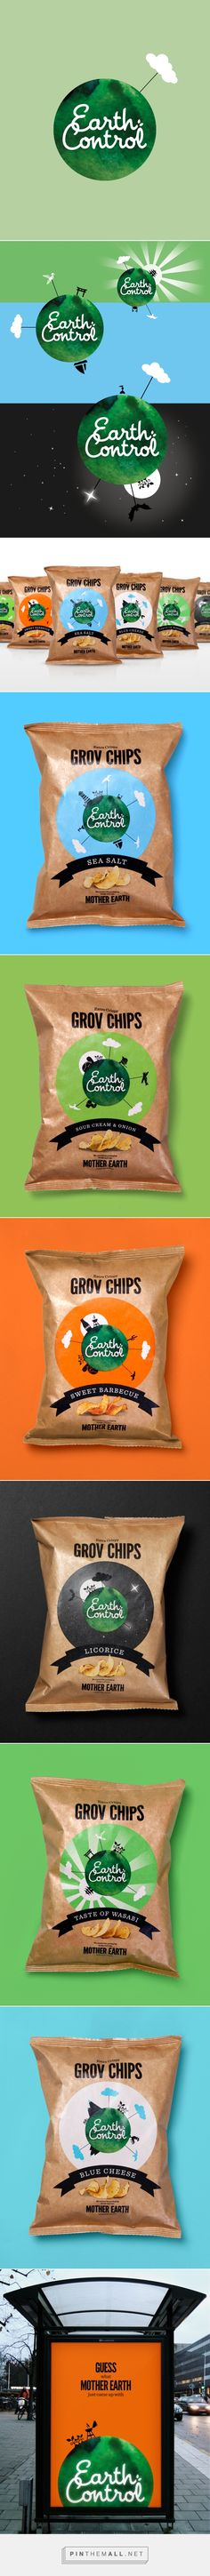 Earth Control Brand Identity & Packaging on Pantone Canvas Gallery curated by Packaging Diva PD. New Danish snack brand with a narrative brand and packaging design revolving around a visual storytelling.